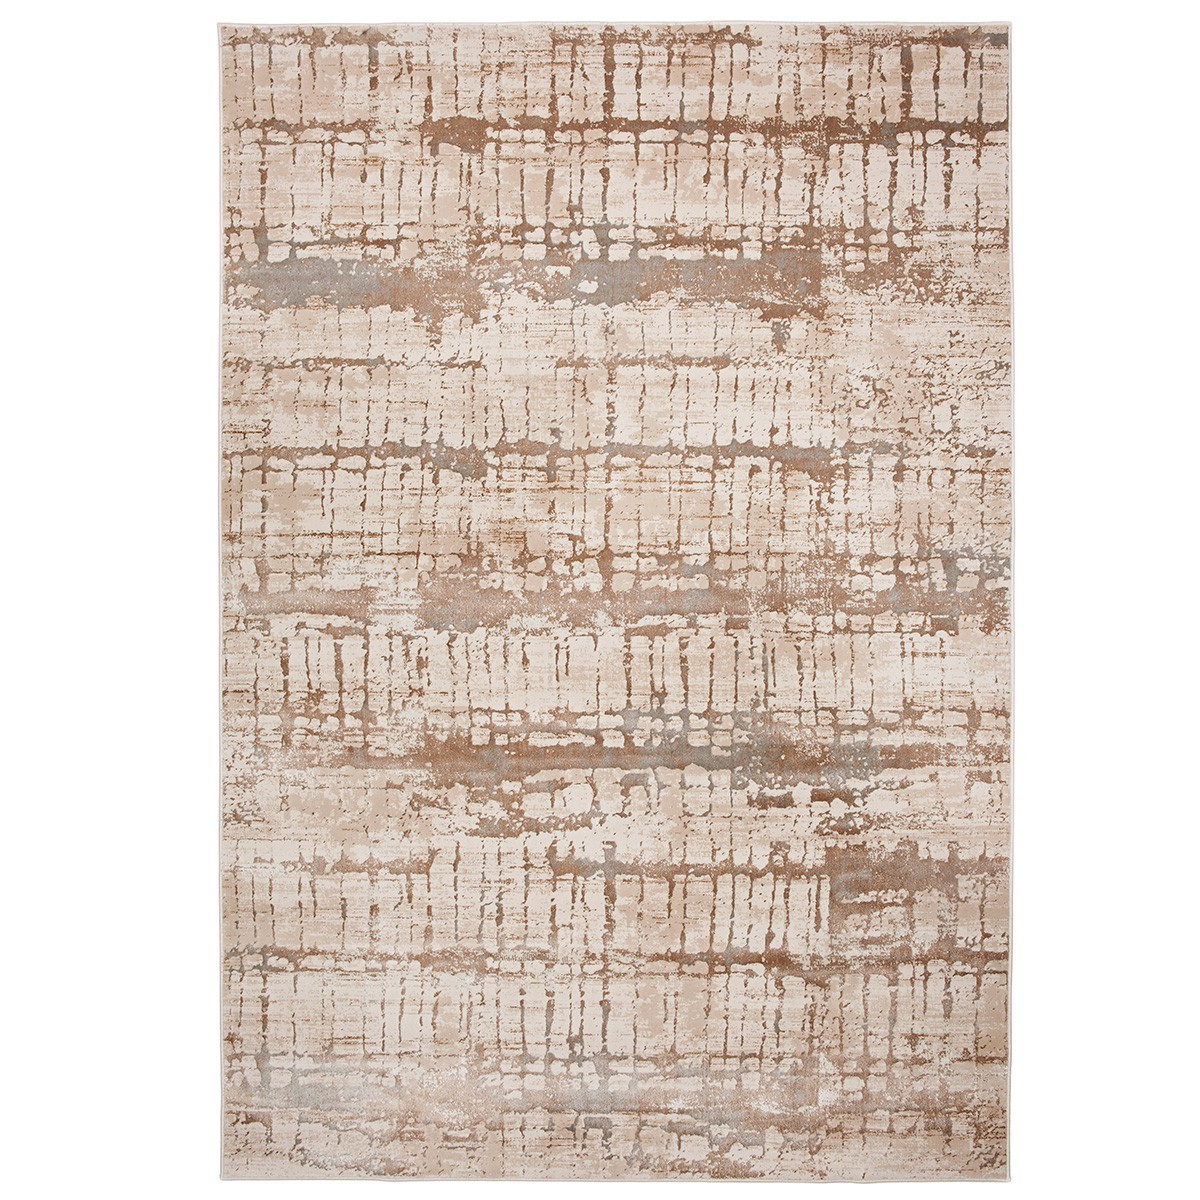 Kingston Modern Rug, 330x240cm, Cream